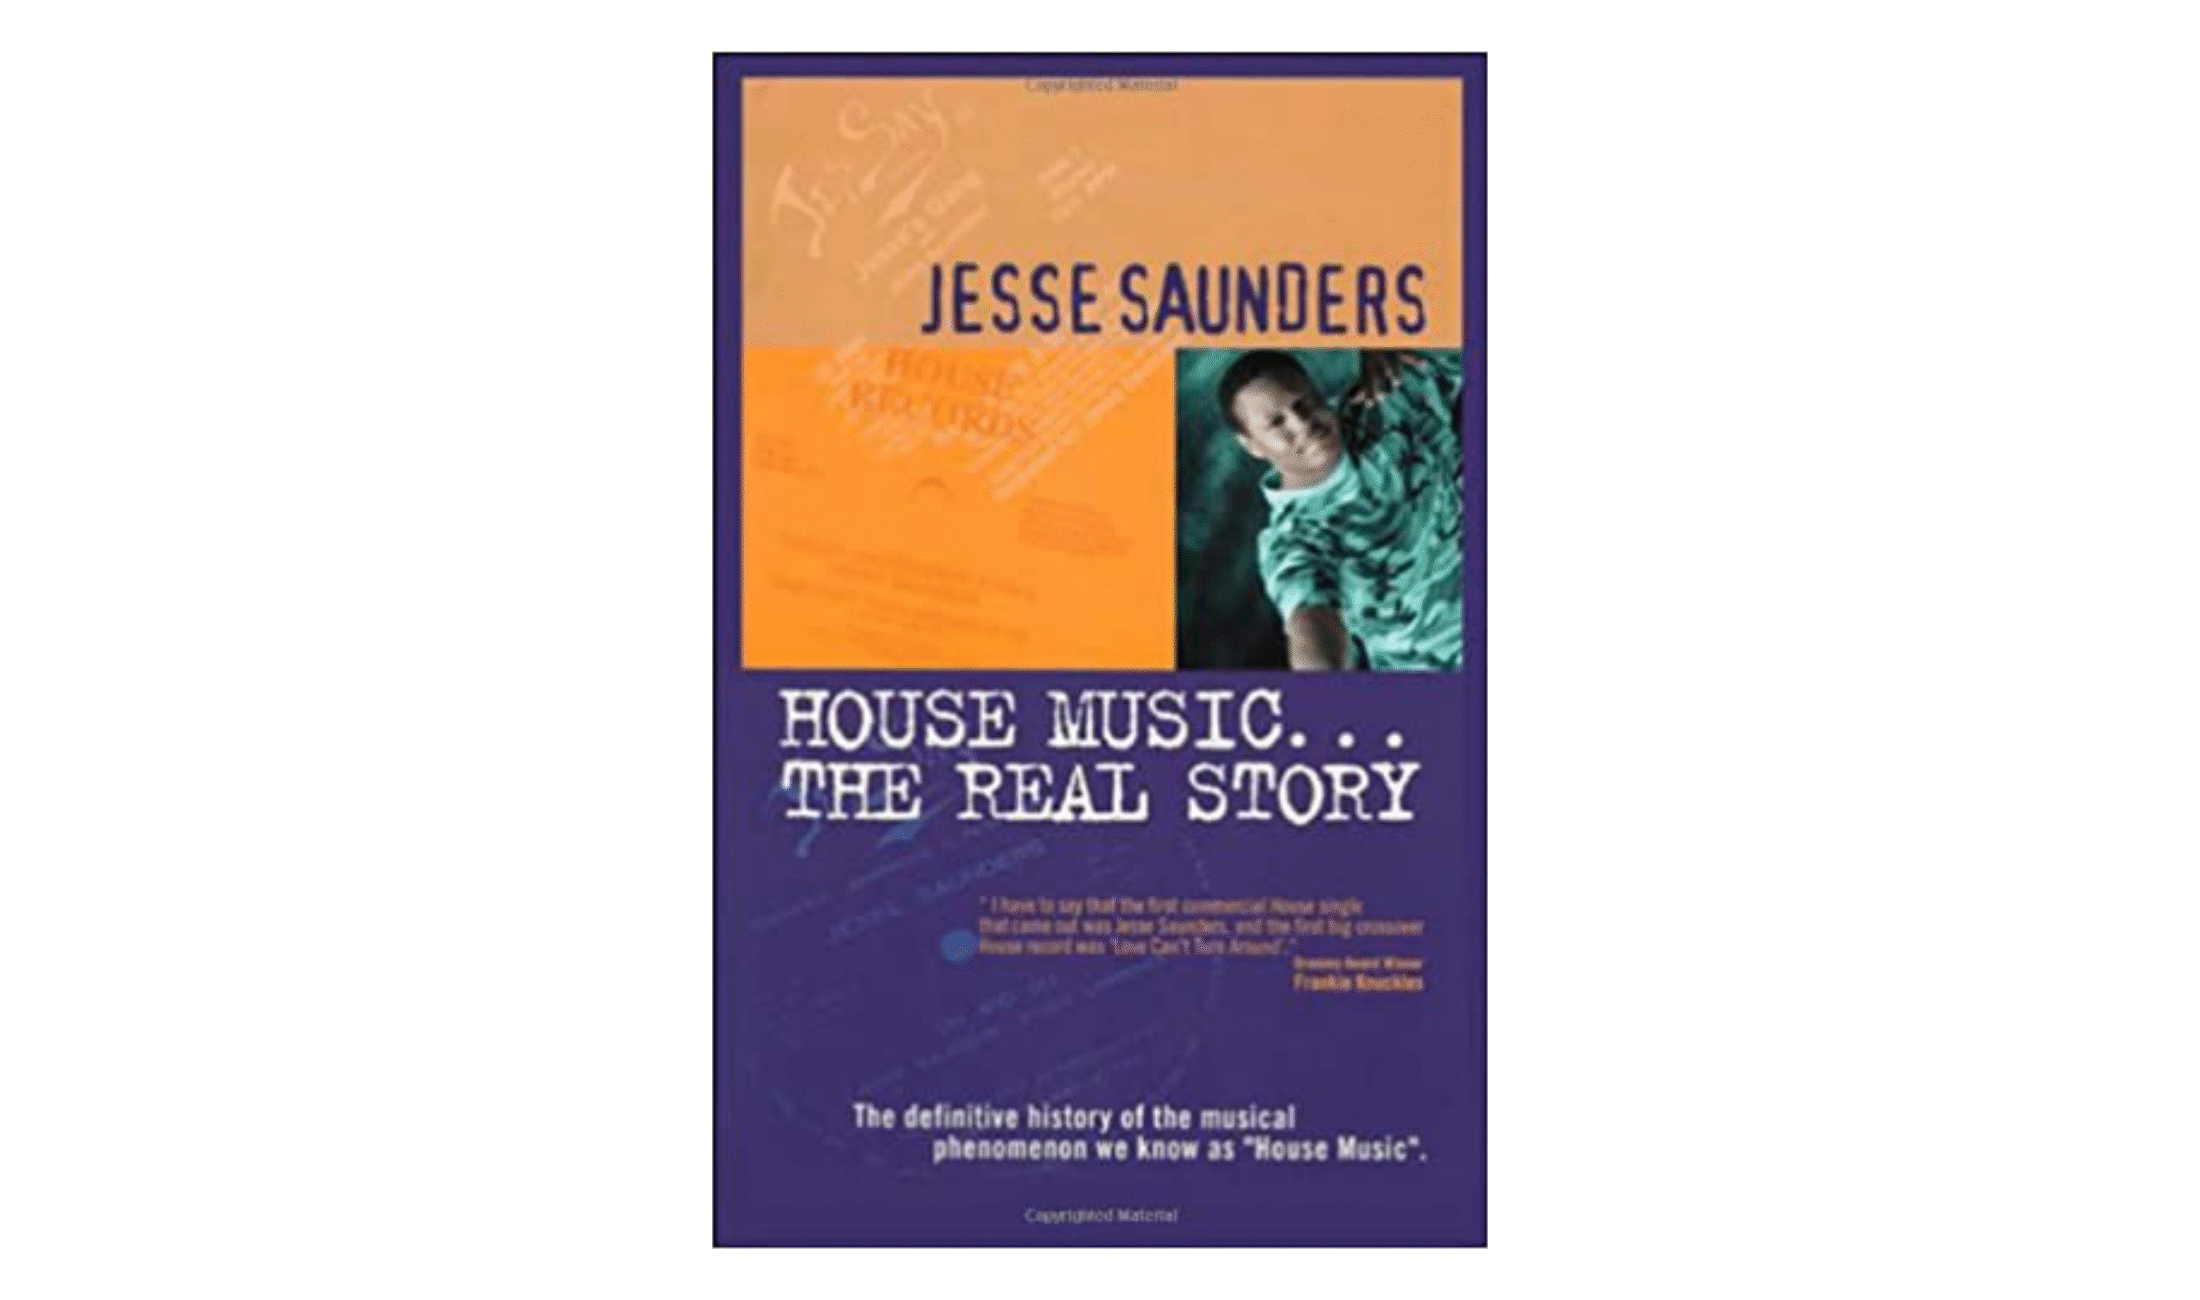 House Music... The Real Story von Jesse Saunders.